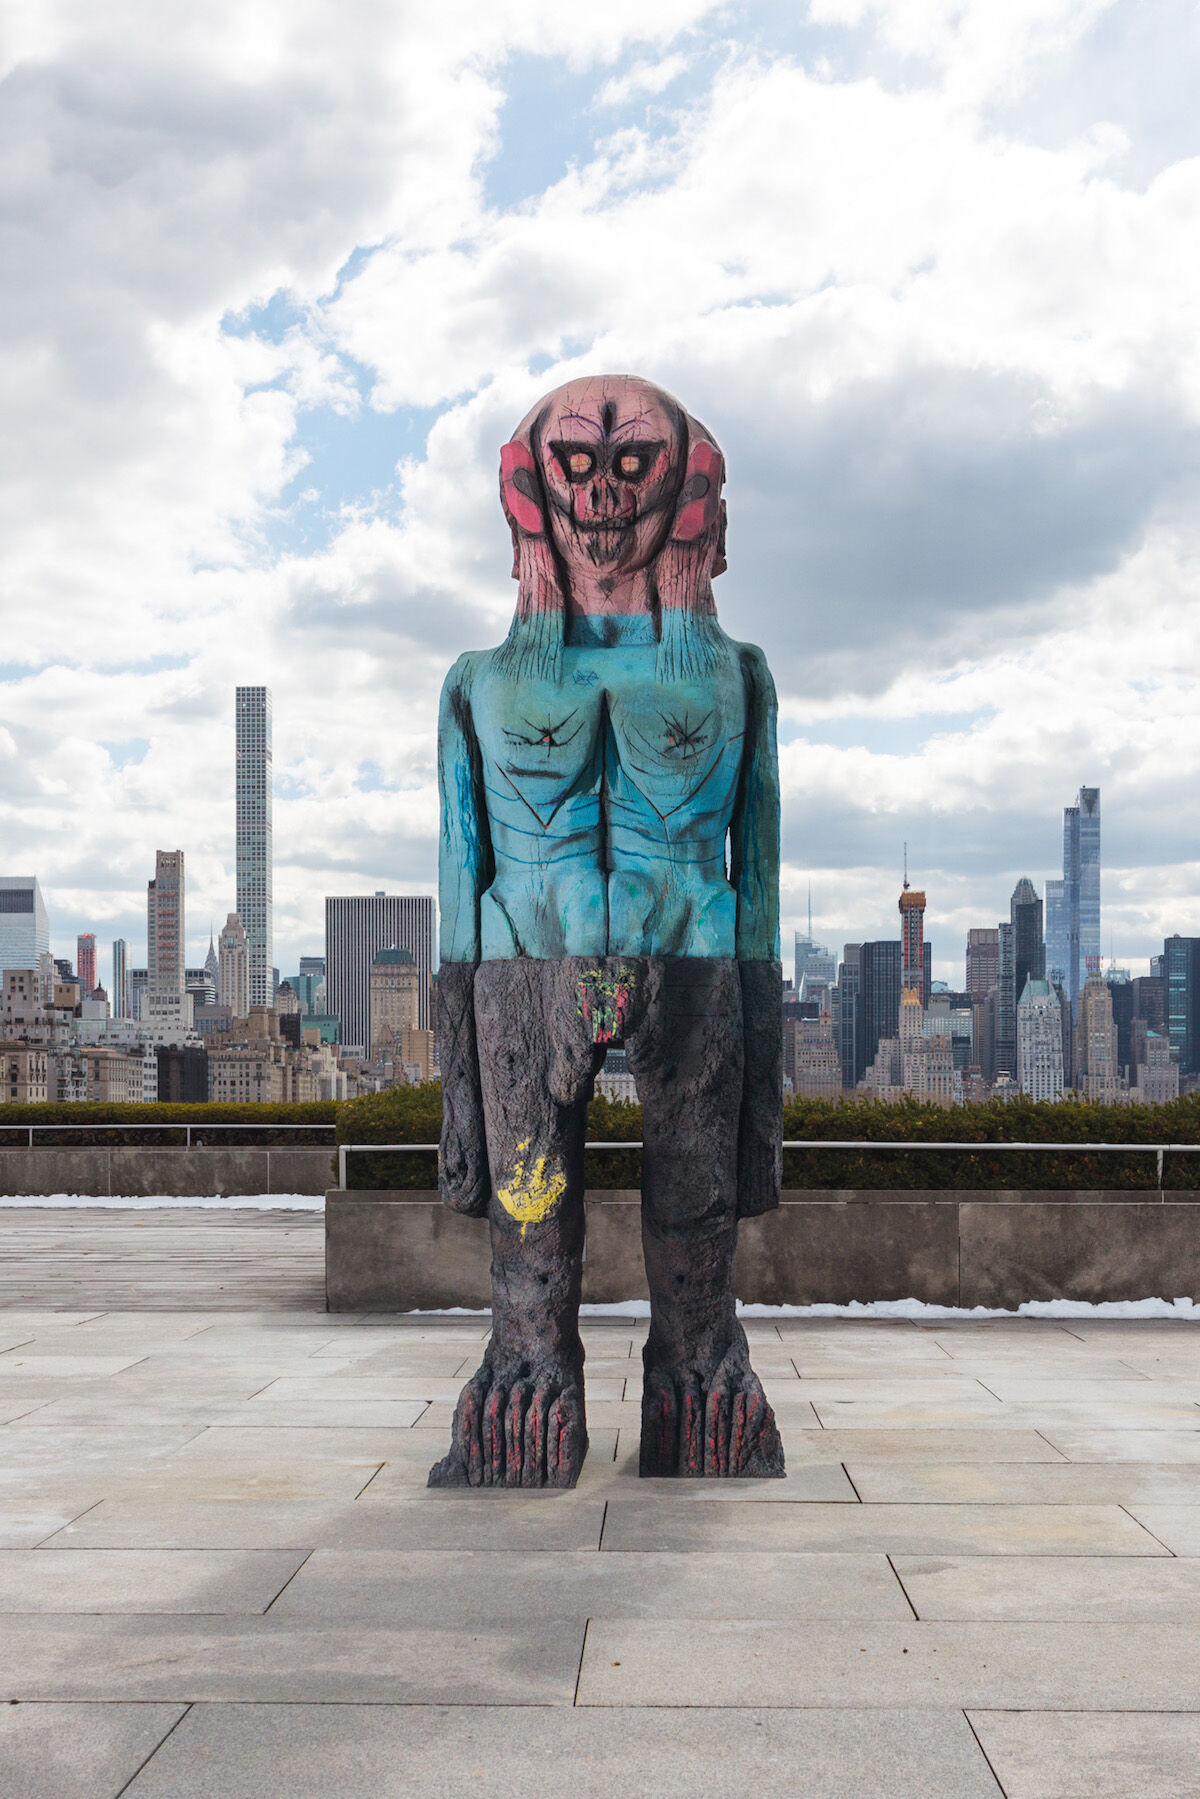 Huma Bhabha, We Come in Peace, 2018. Roof Garden Commission, Metropolitan Museum of Art, New York. Courtesy of the artist and Salon 94, New York.